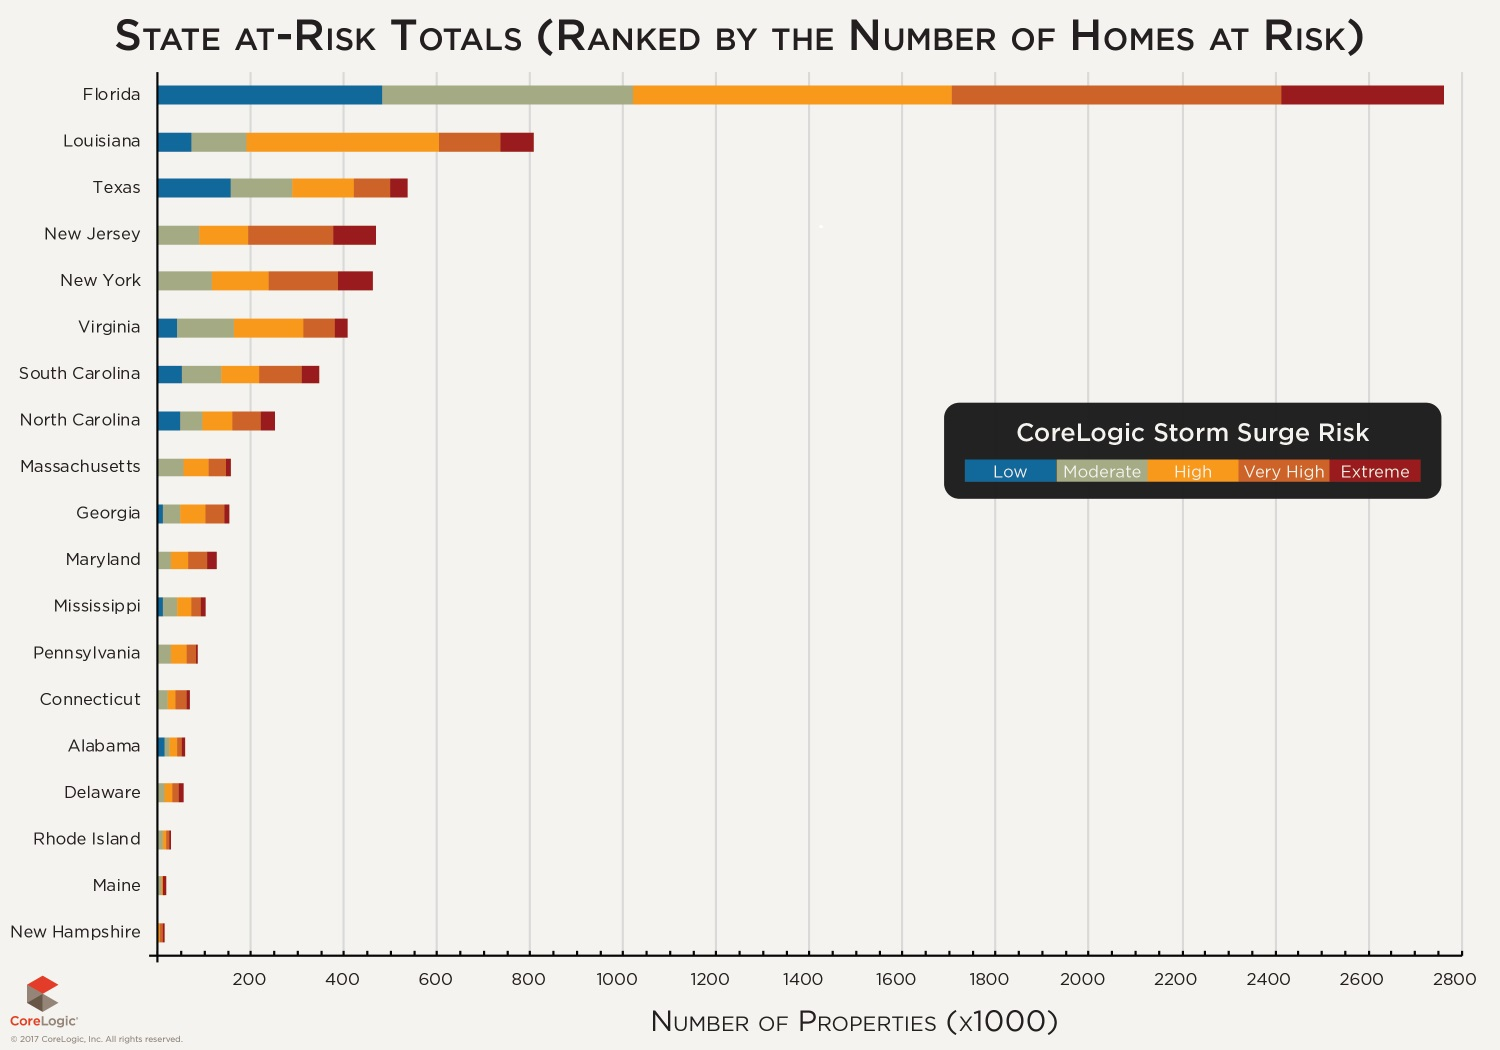 26,425 SINGLE FAMILY HOMES in Rhode Island are at risk for storm surge damage. / COURTESY CORELOGIC